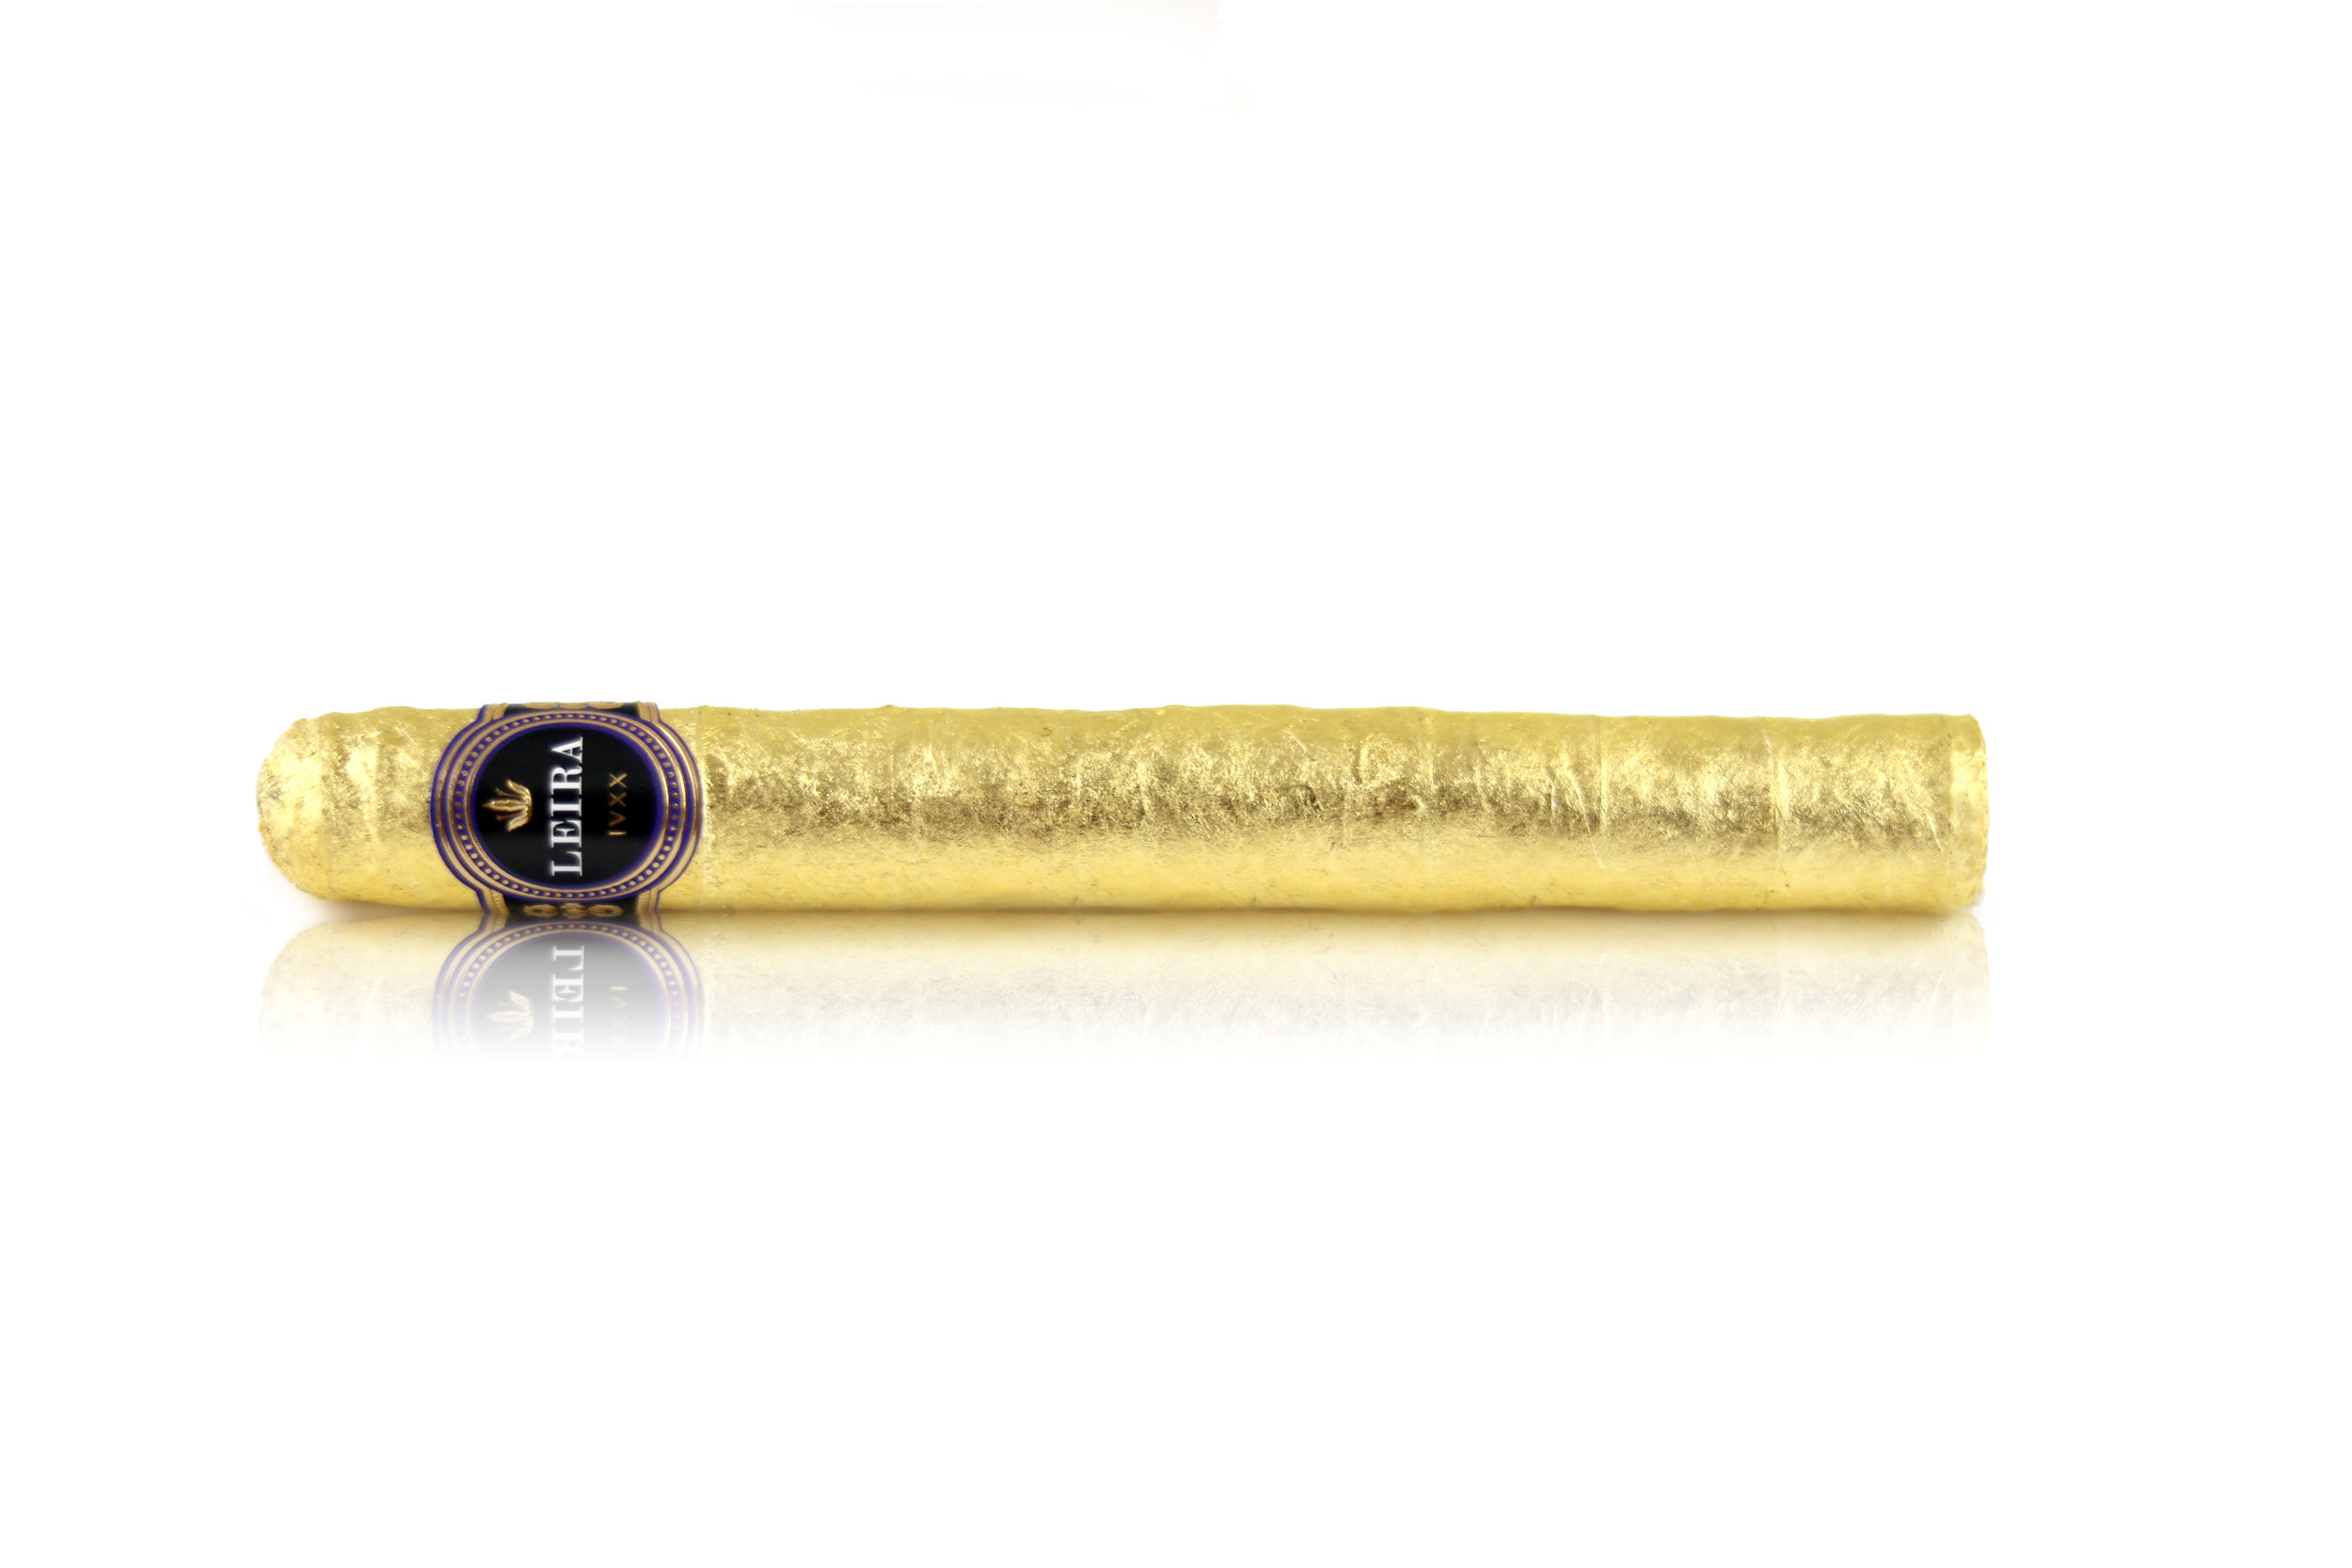 24k Gold Leaf Wrapped Corona  Ring Gauge: 42 Length: 6 inches Flower: 12g Estimated Flight Time: 2-3 hours Retail Value: $1000  **Prices may vary depending on the local market.